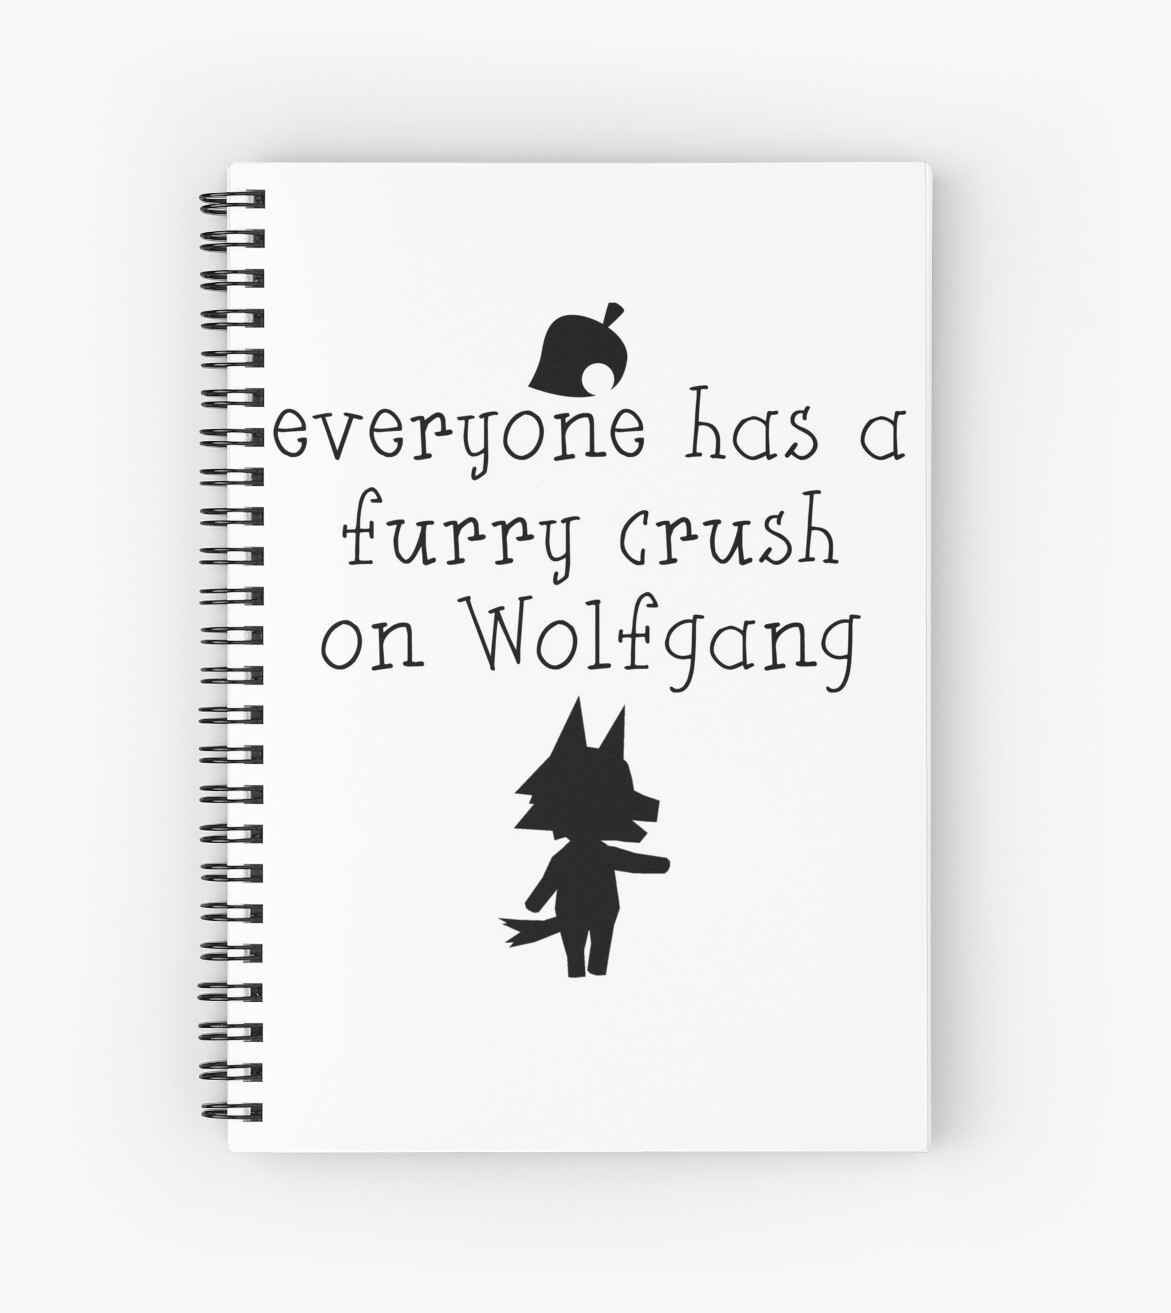 Animal Crush Animal Crossing Everyone Has A Furry Crush On Wolfgang Spiral Notebook By Theatre Thoughts